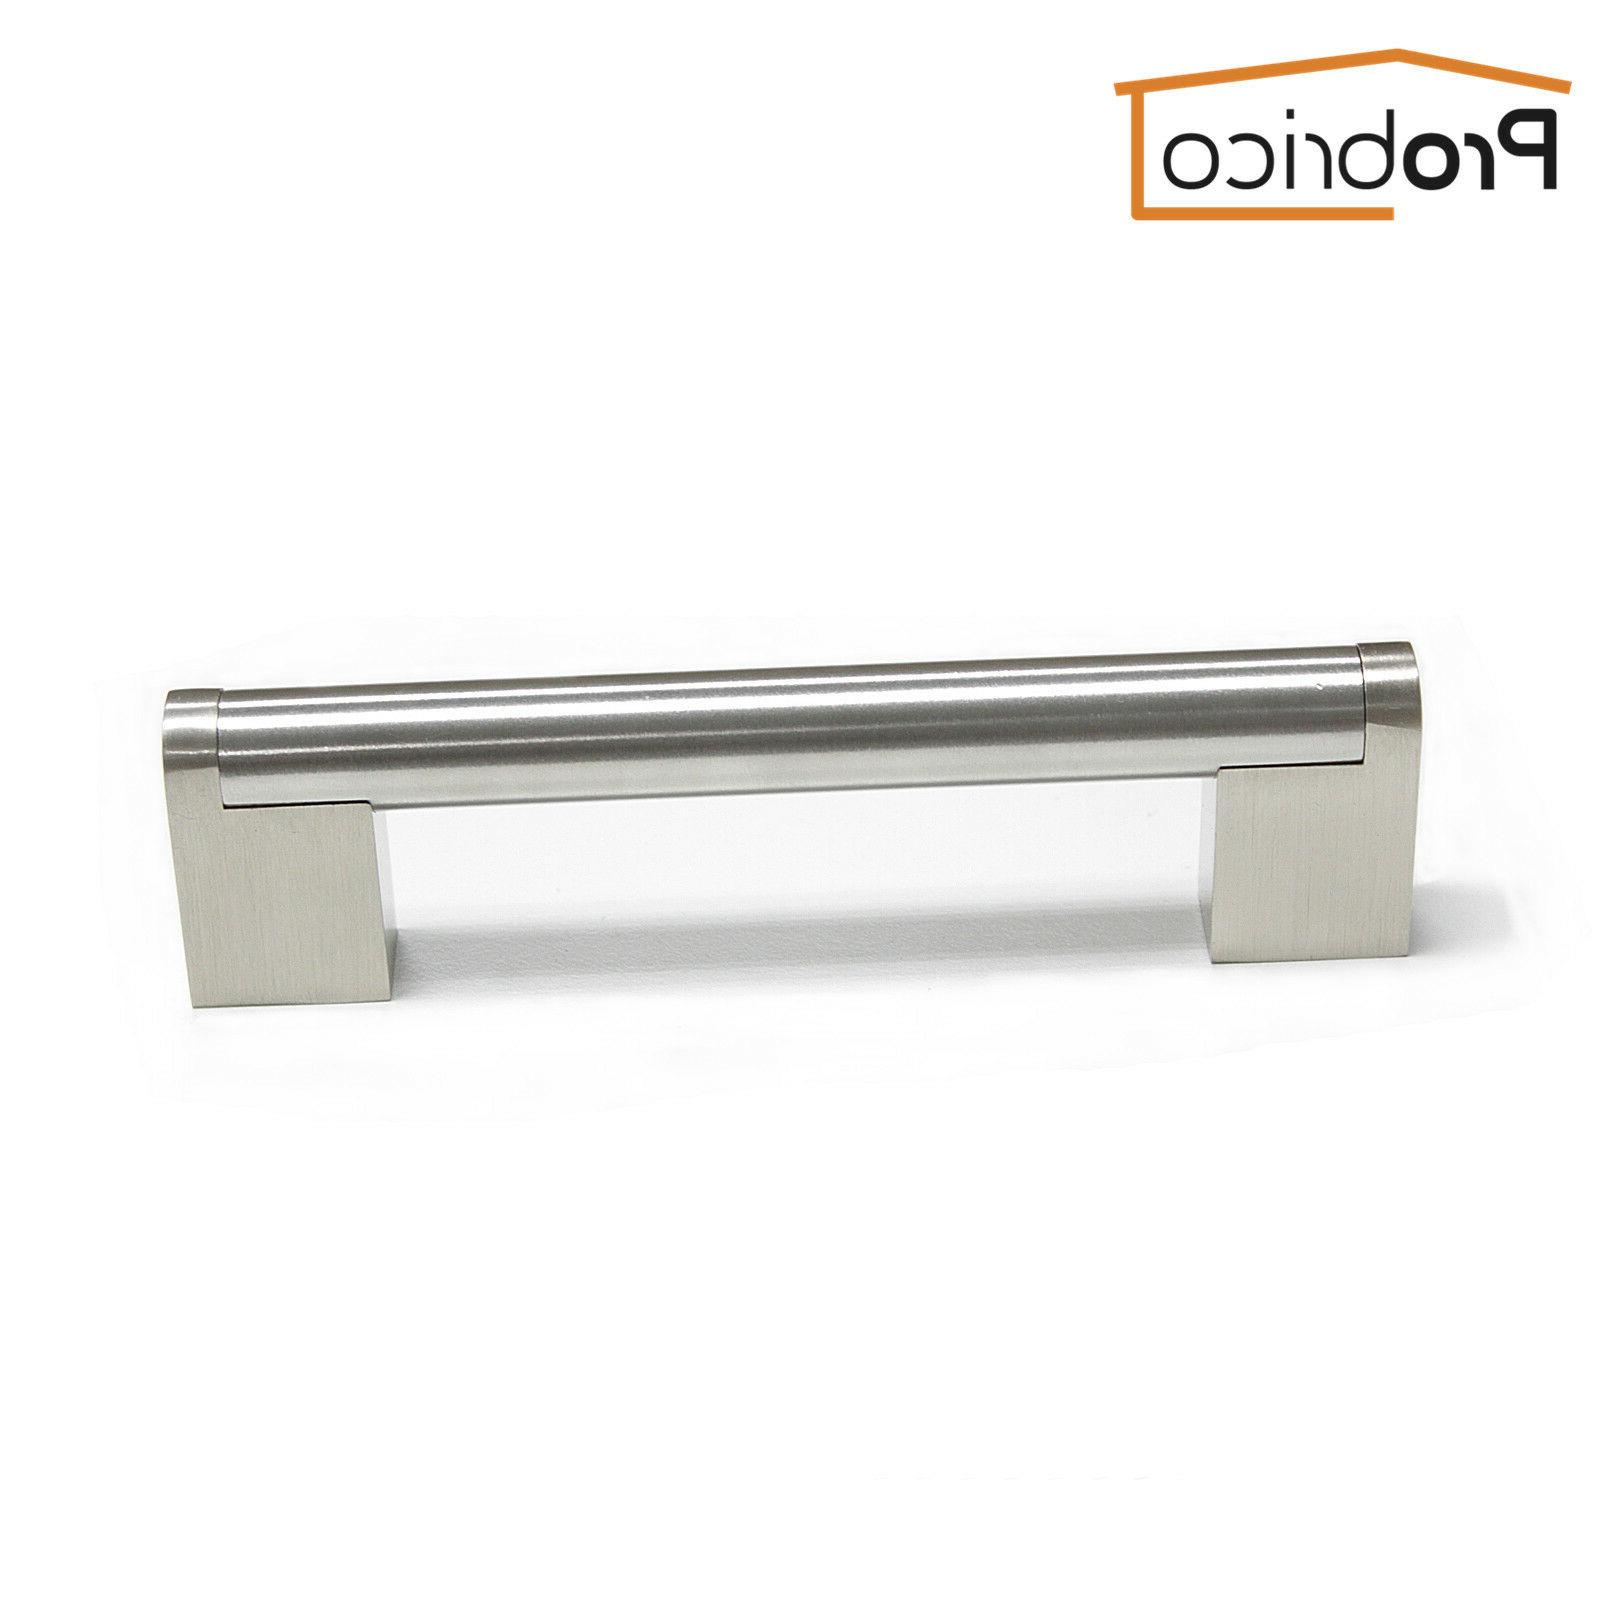 10PCS Nickel Cabinet Stainless Boss Bar Handle